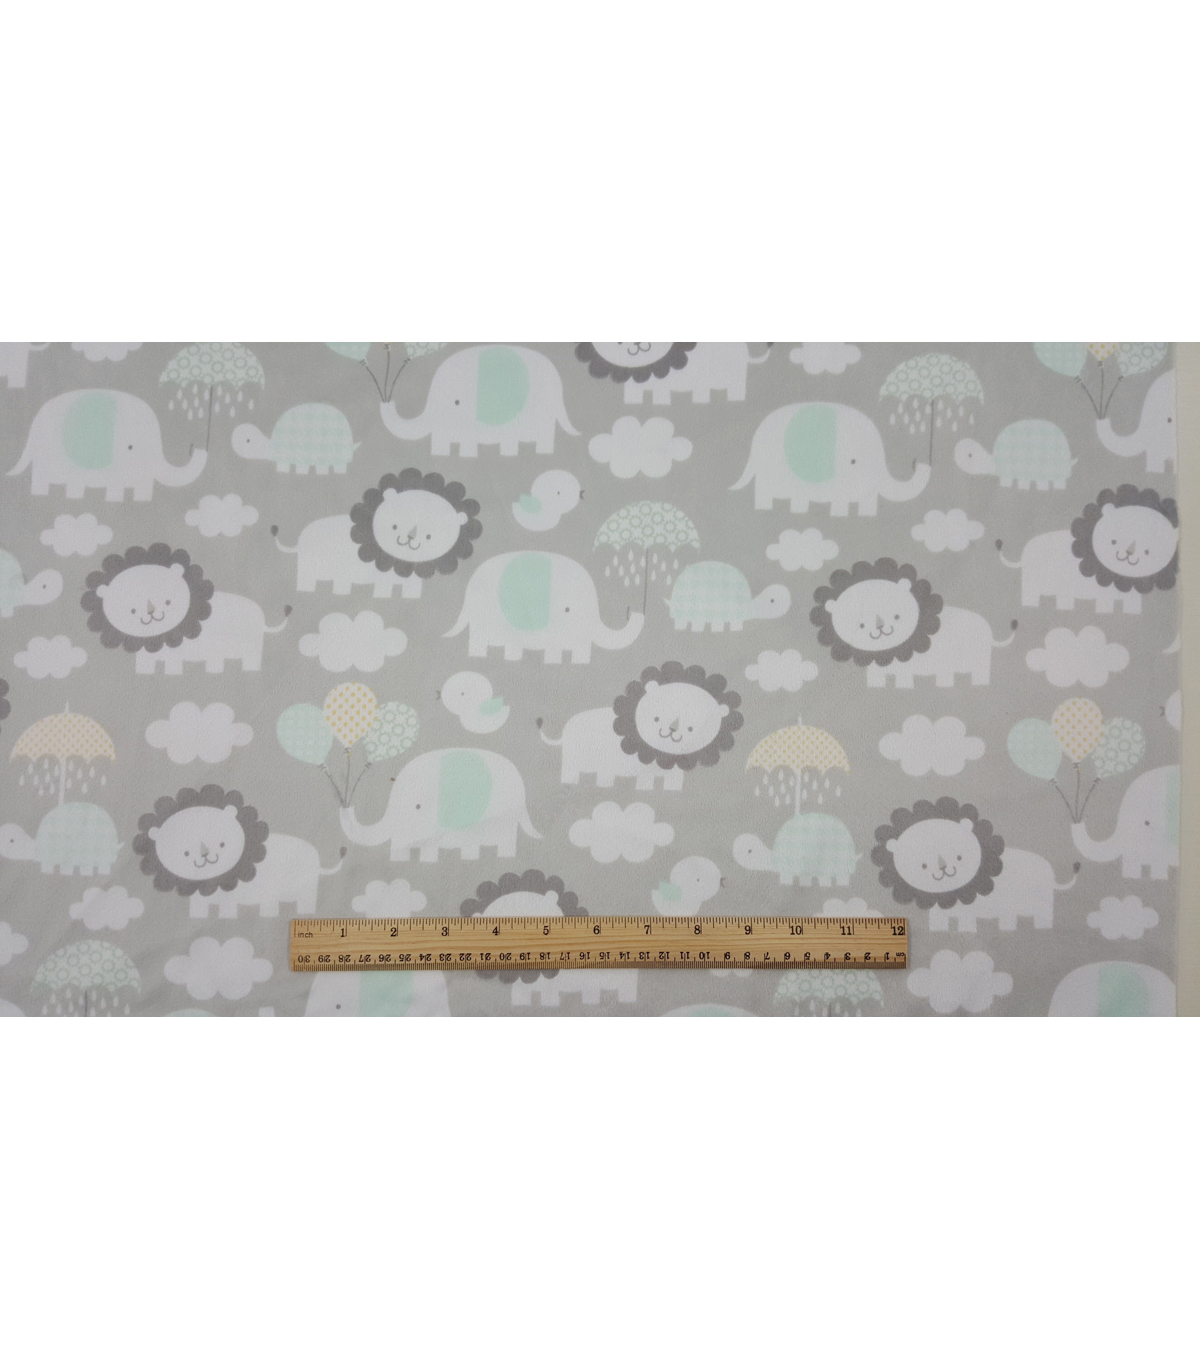 Soft & Comfy Nursery Fabric 57\u0022-Elephant Raishowers